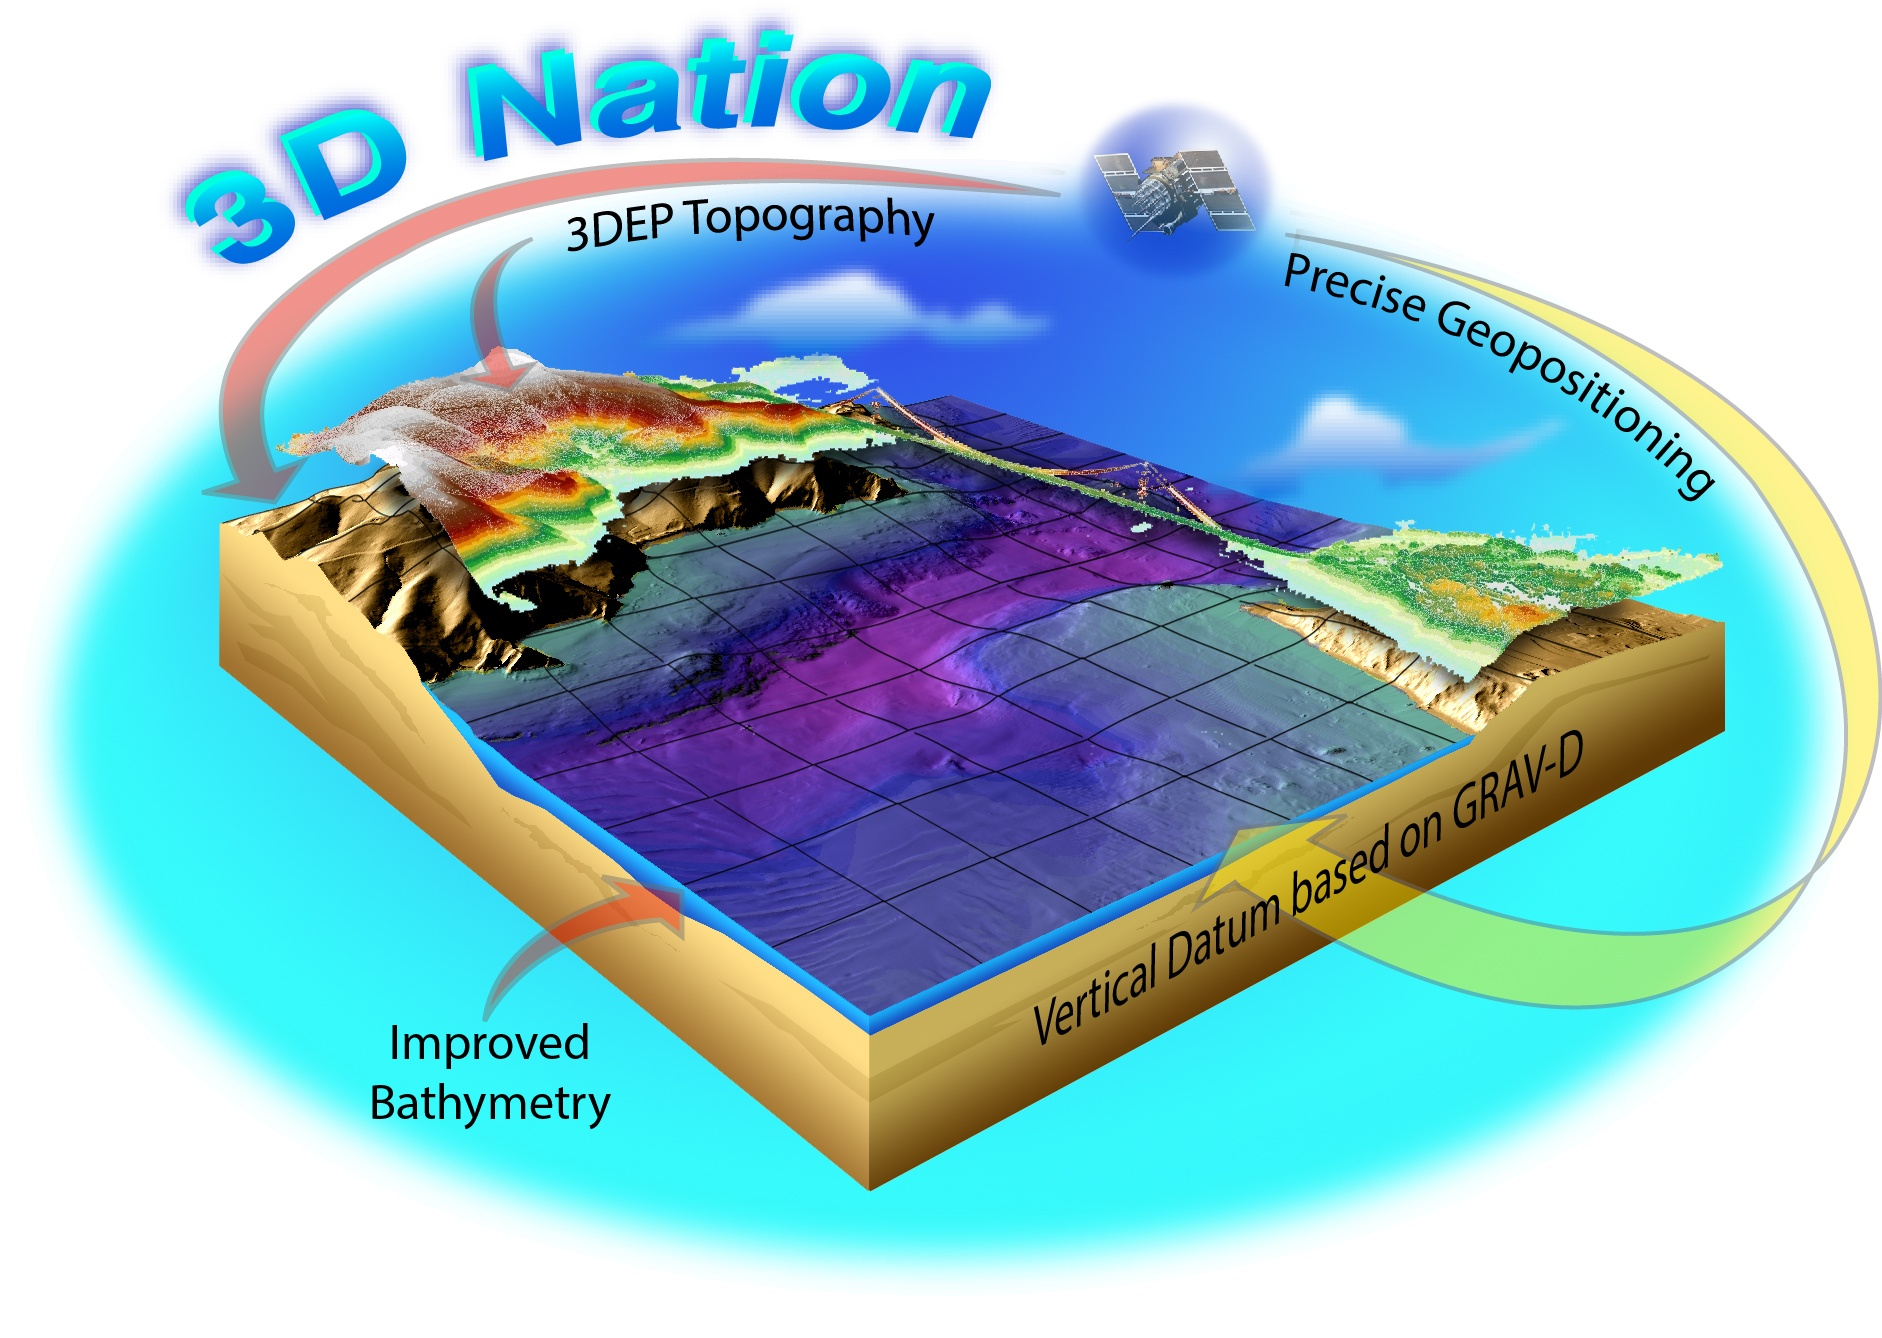 3D Nation Improved bathymetry. 3DEP Topography. Precise Geopositioning. Vertical datum based on GRAVD